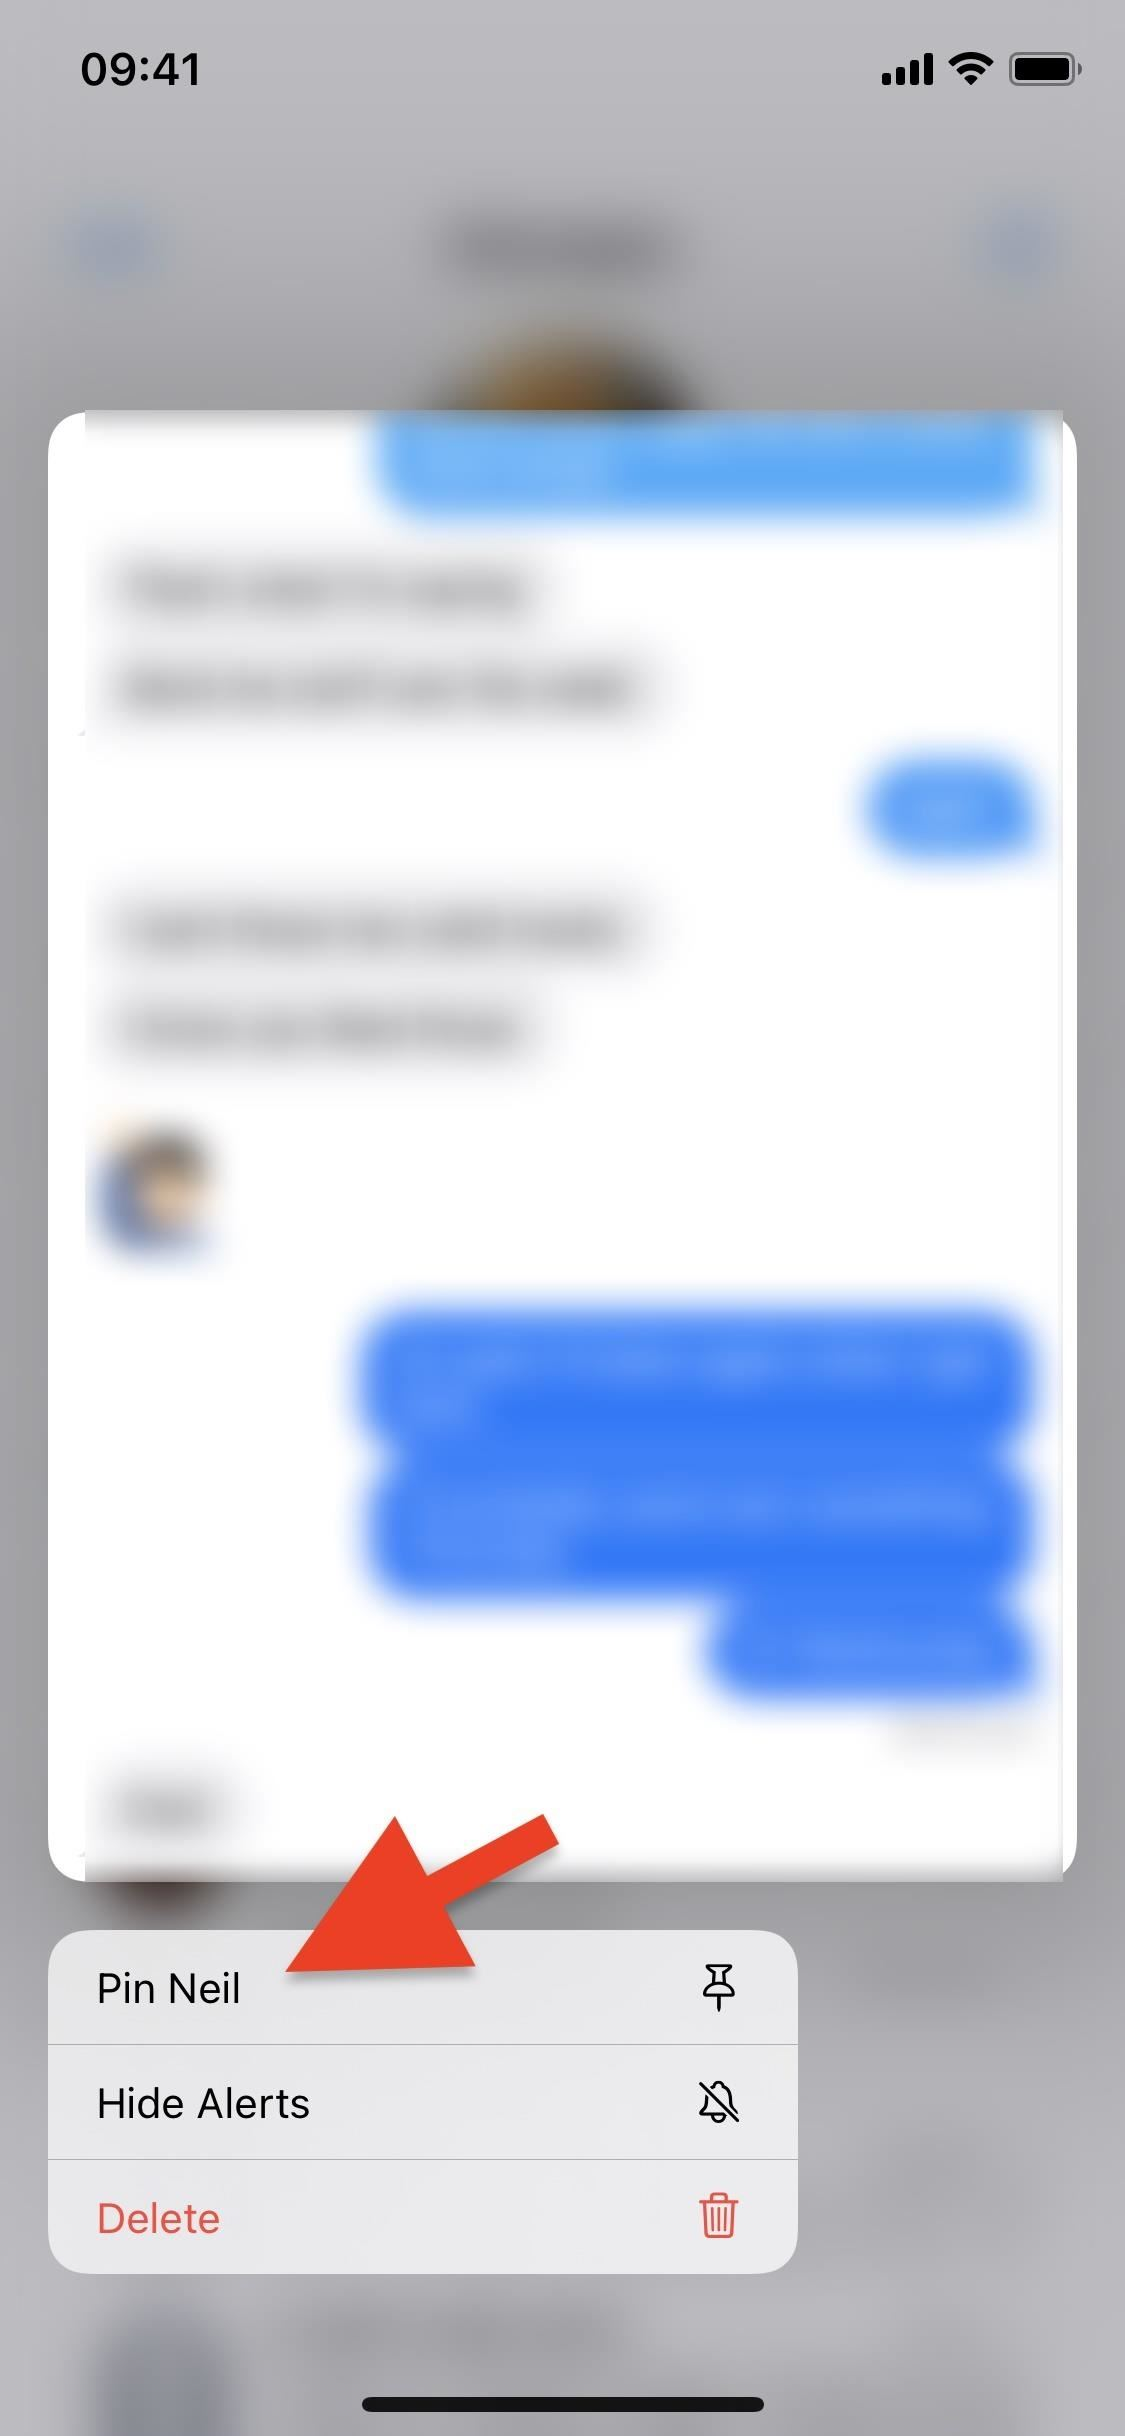 How to Pin Conversations to the Top of Messages in iOS 14 (& Unpin Them Later)